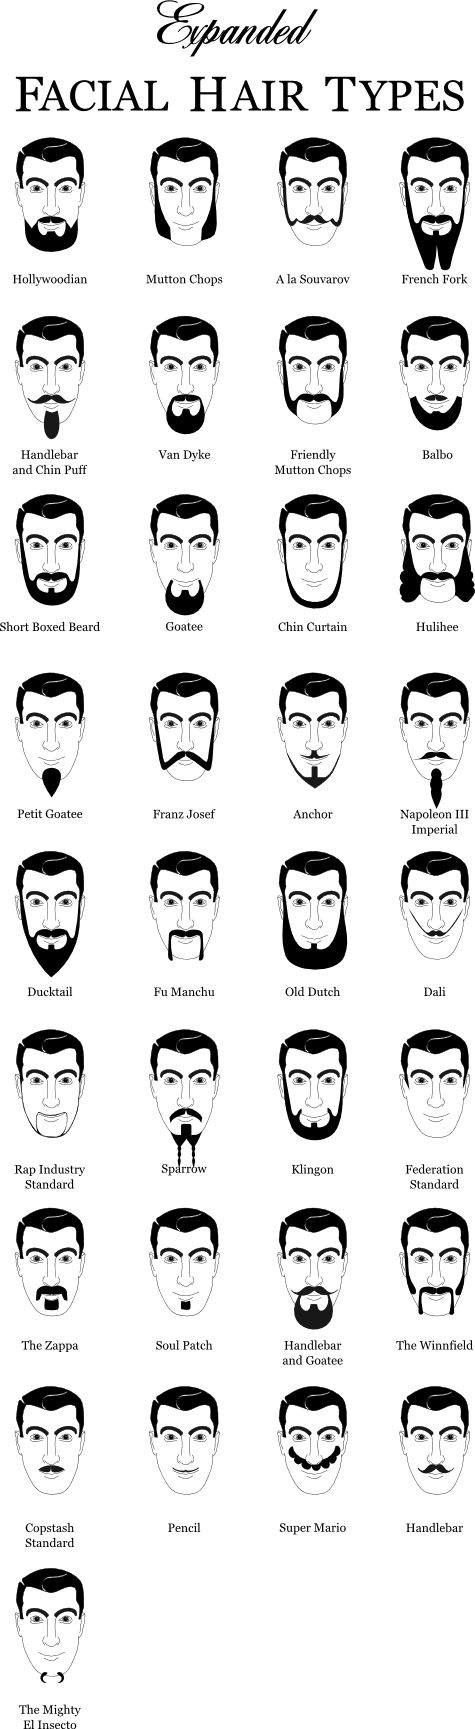 every kind of beard/facial hair type you never thought you needed to know about...